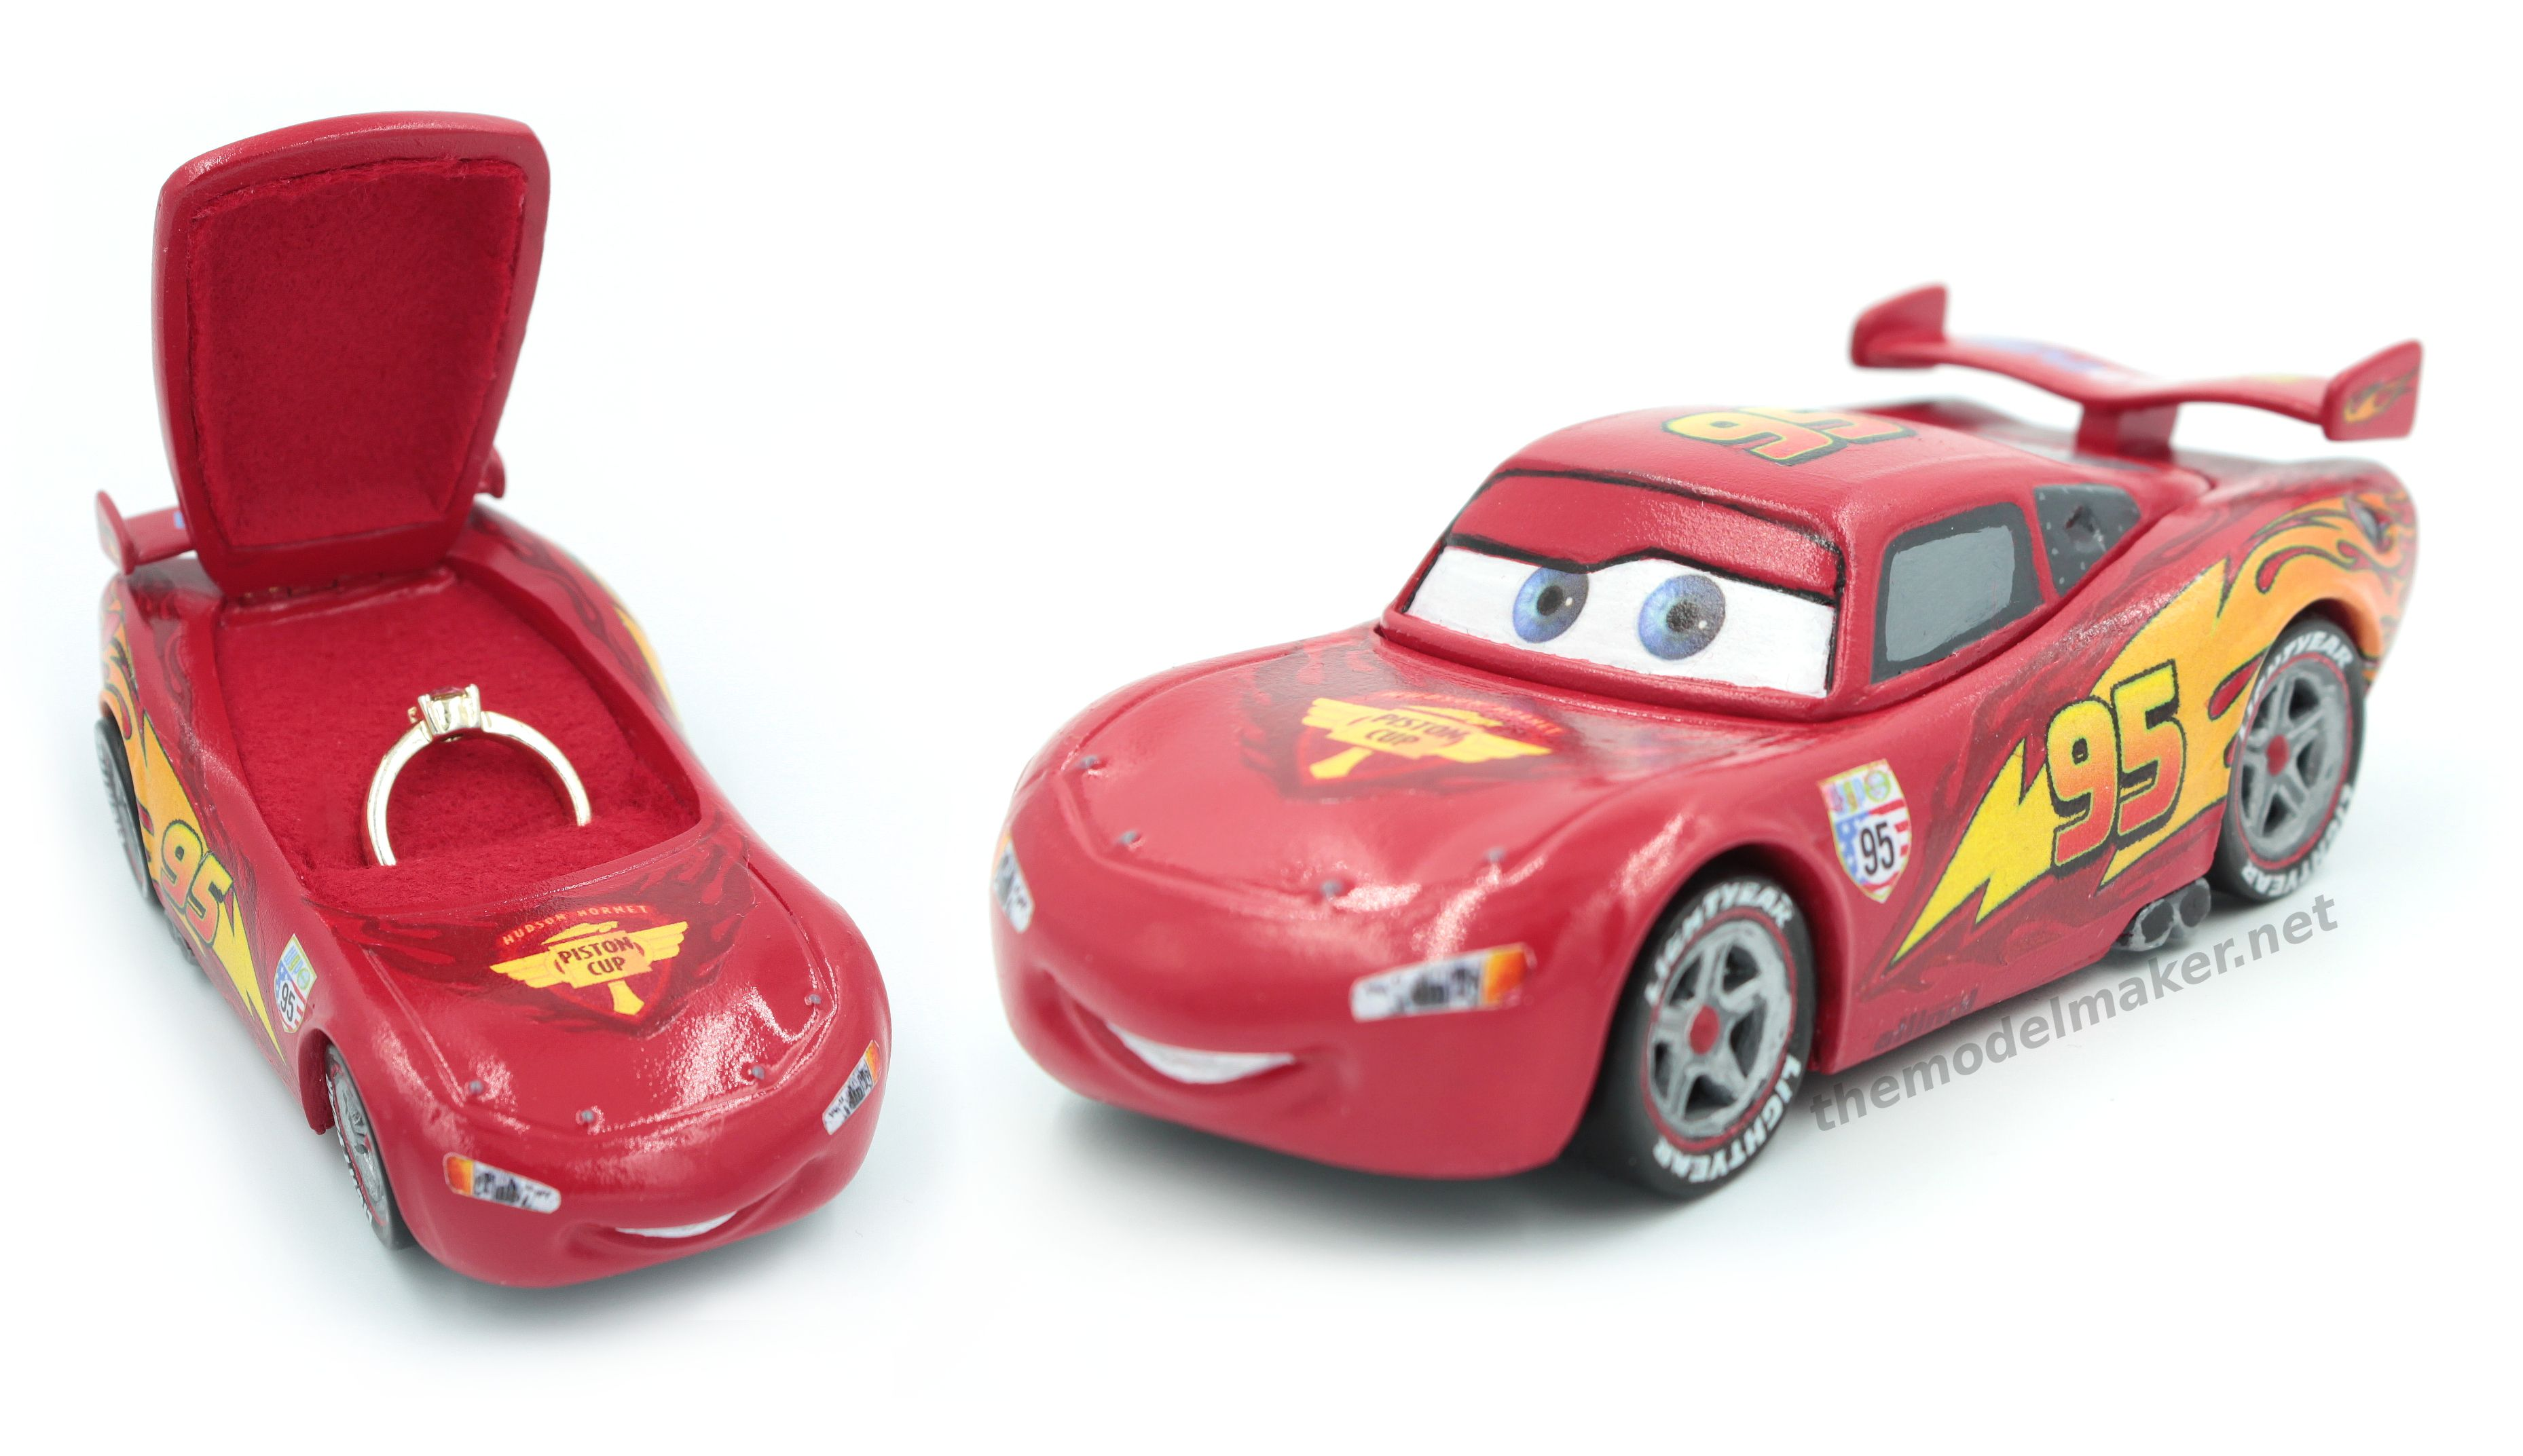 Custom engagement ring box based on Lighting McQueen character from ...